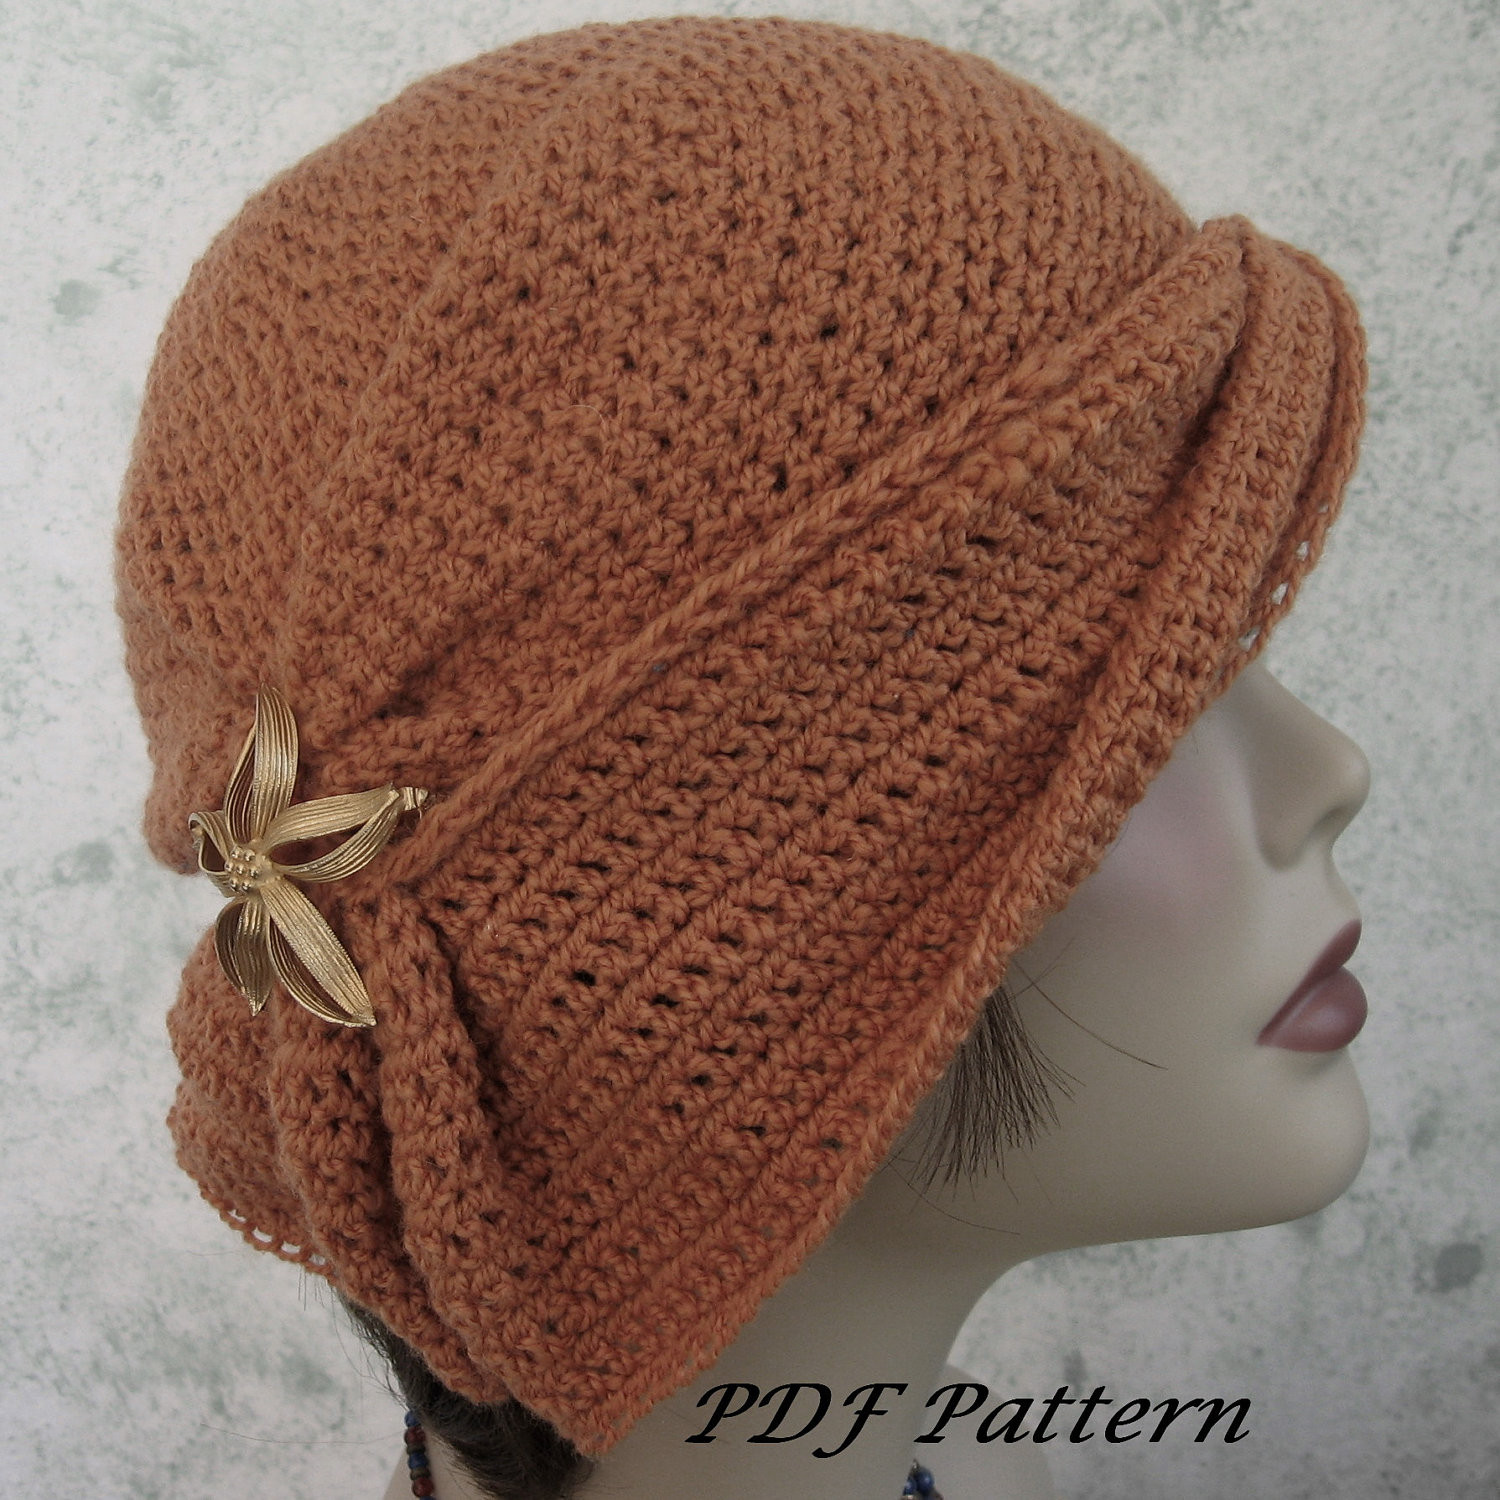 Free Crochet Hat Patterns Inspirational Free Crochet Hat Patterns You Have Been Looking for Of Superb 50 Ideas Free Crochet Hat Patterns